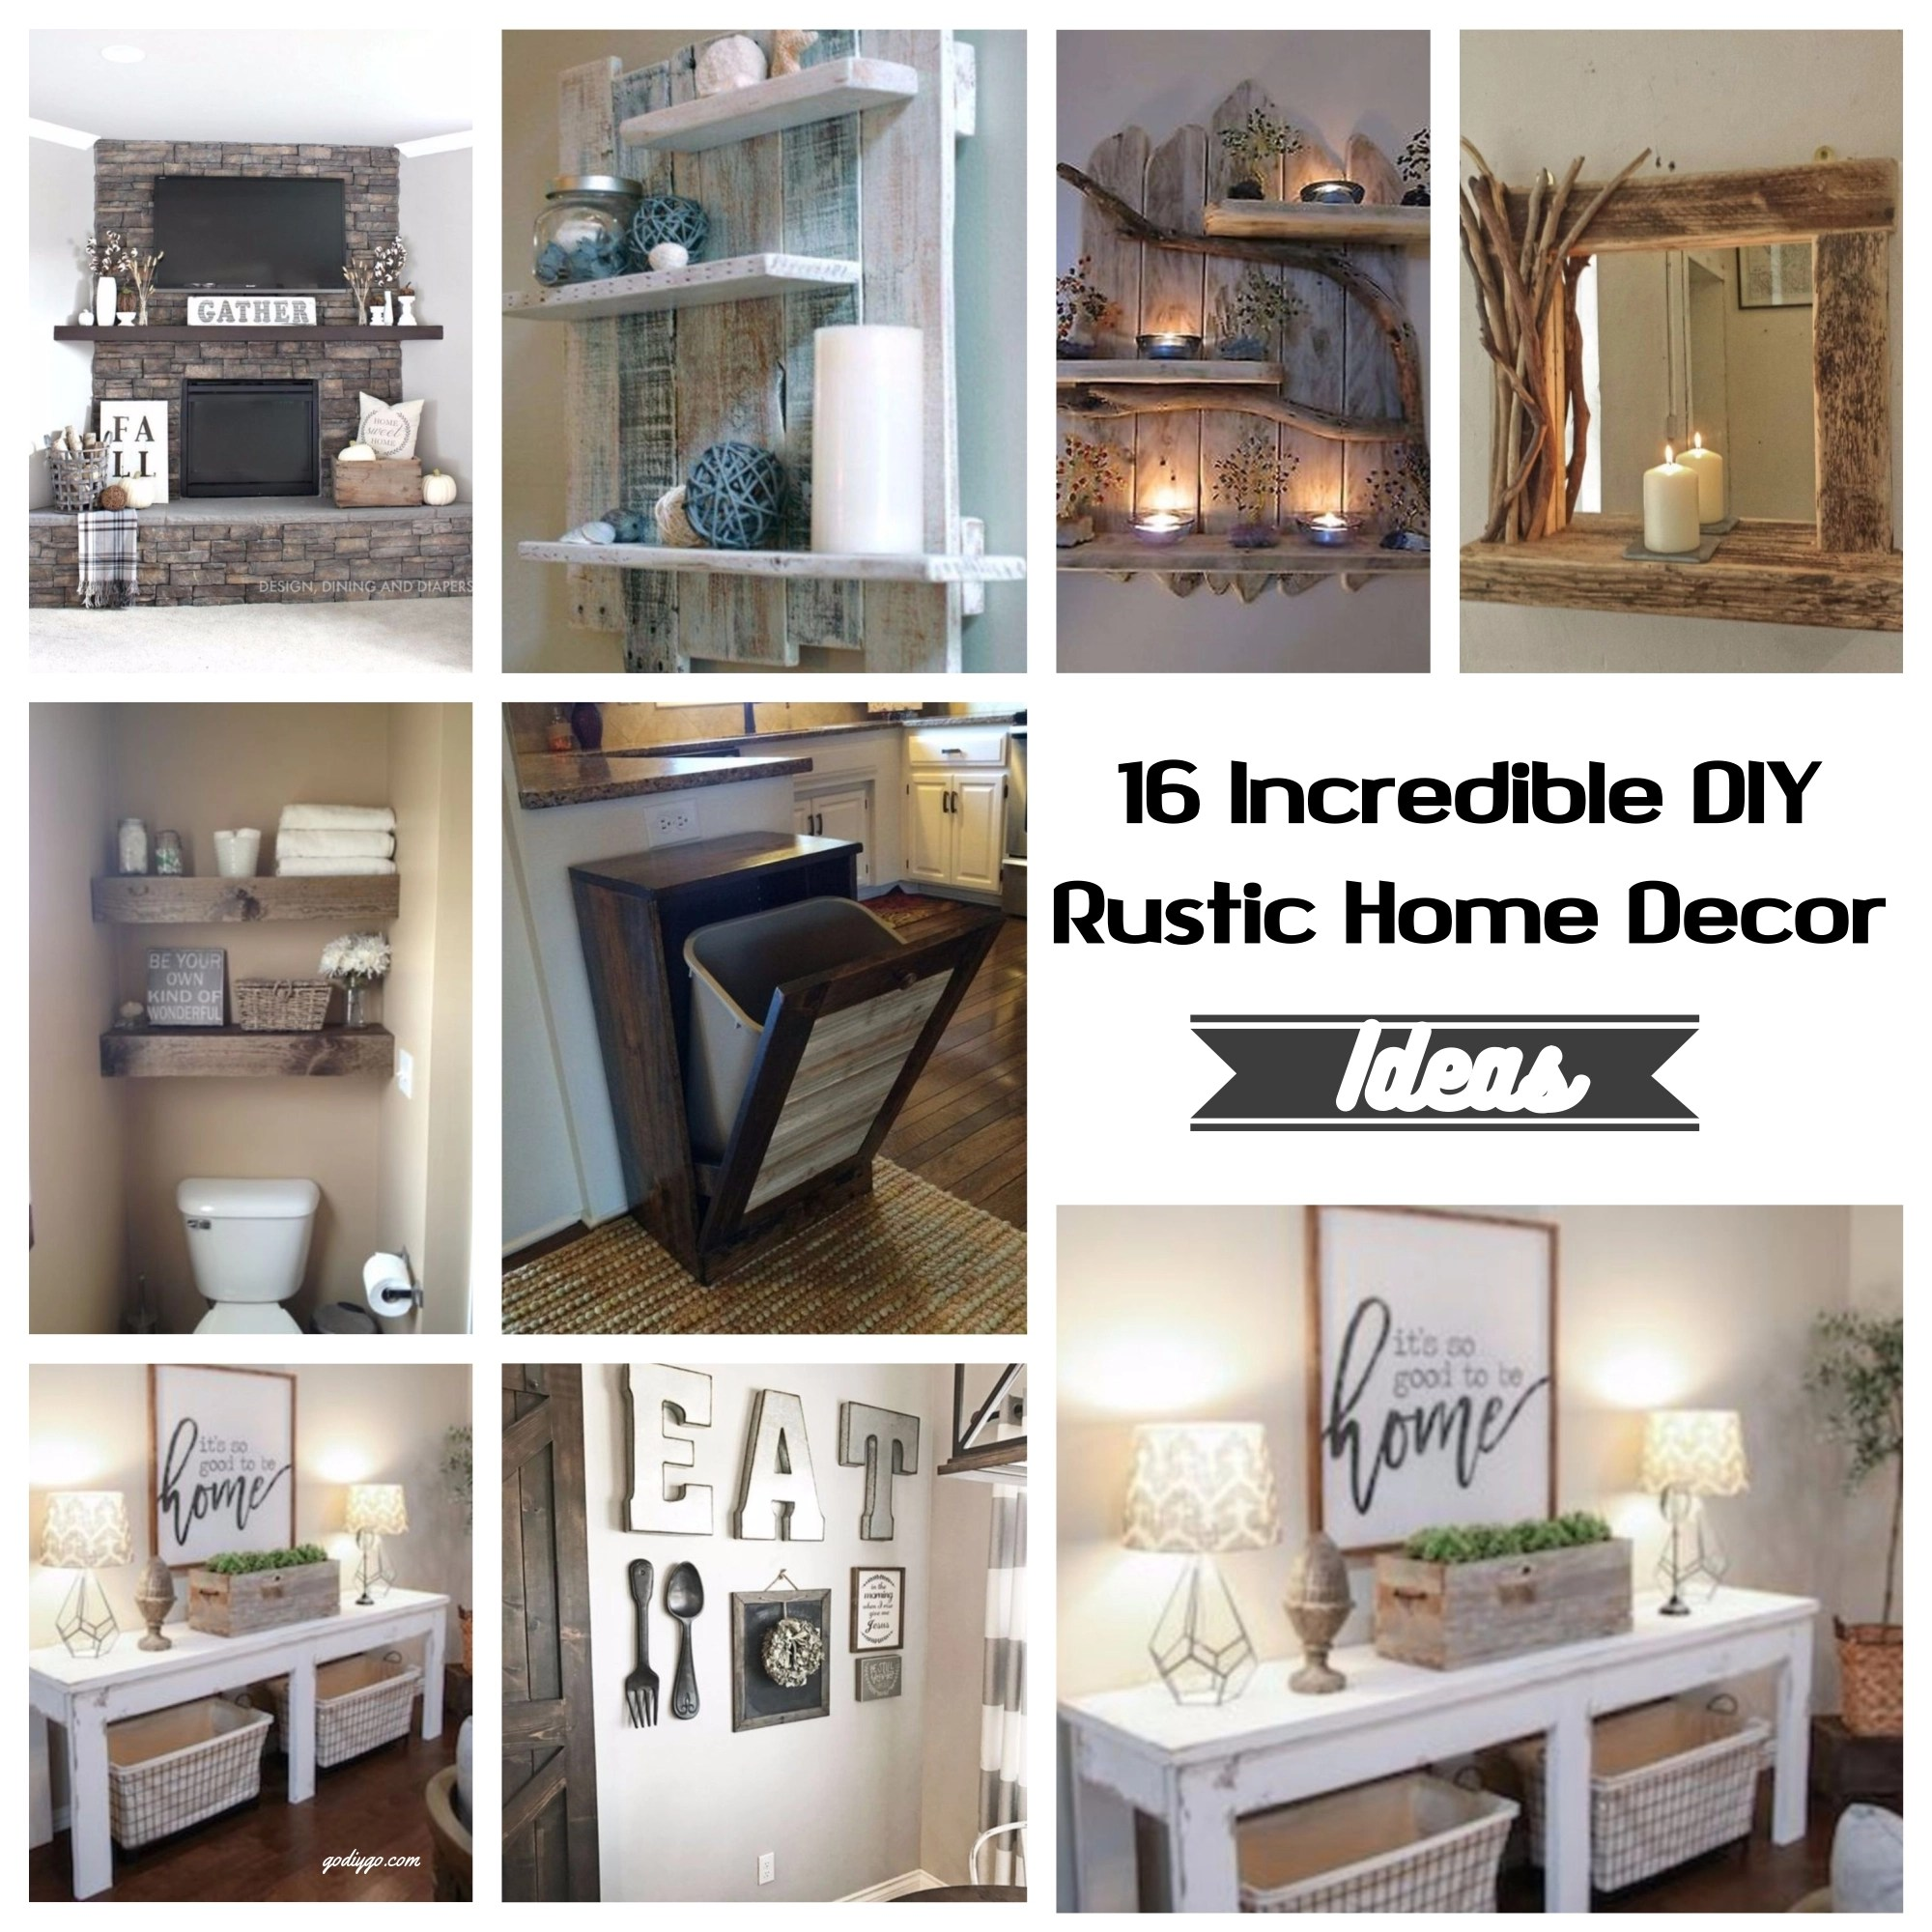 16 Incredible DIY Rustic Home Decor Ideas - GODIYGO.COM